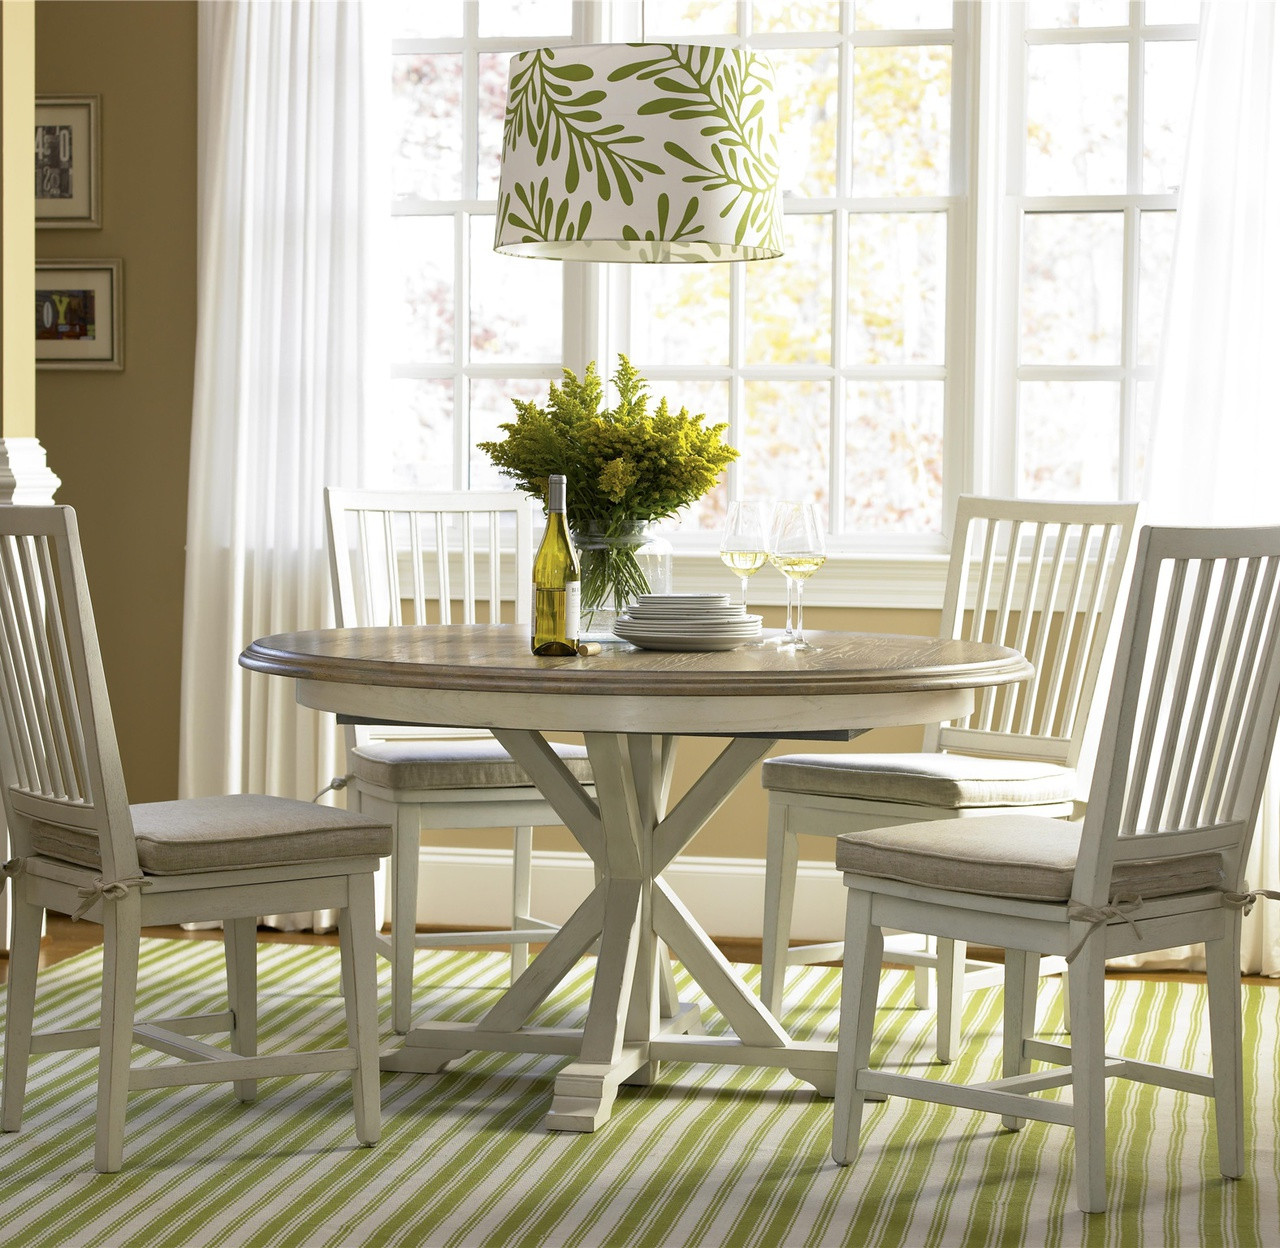 Coastal Beach White Oak Round Expandable Dining Table 54 Zin Home